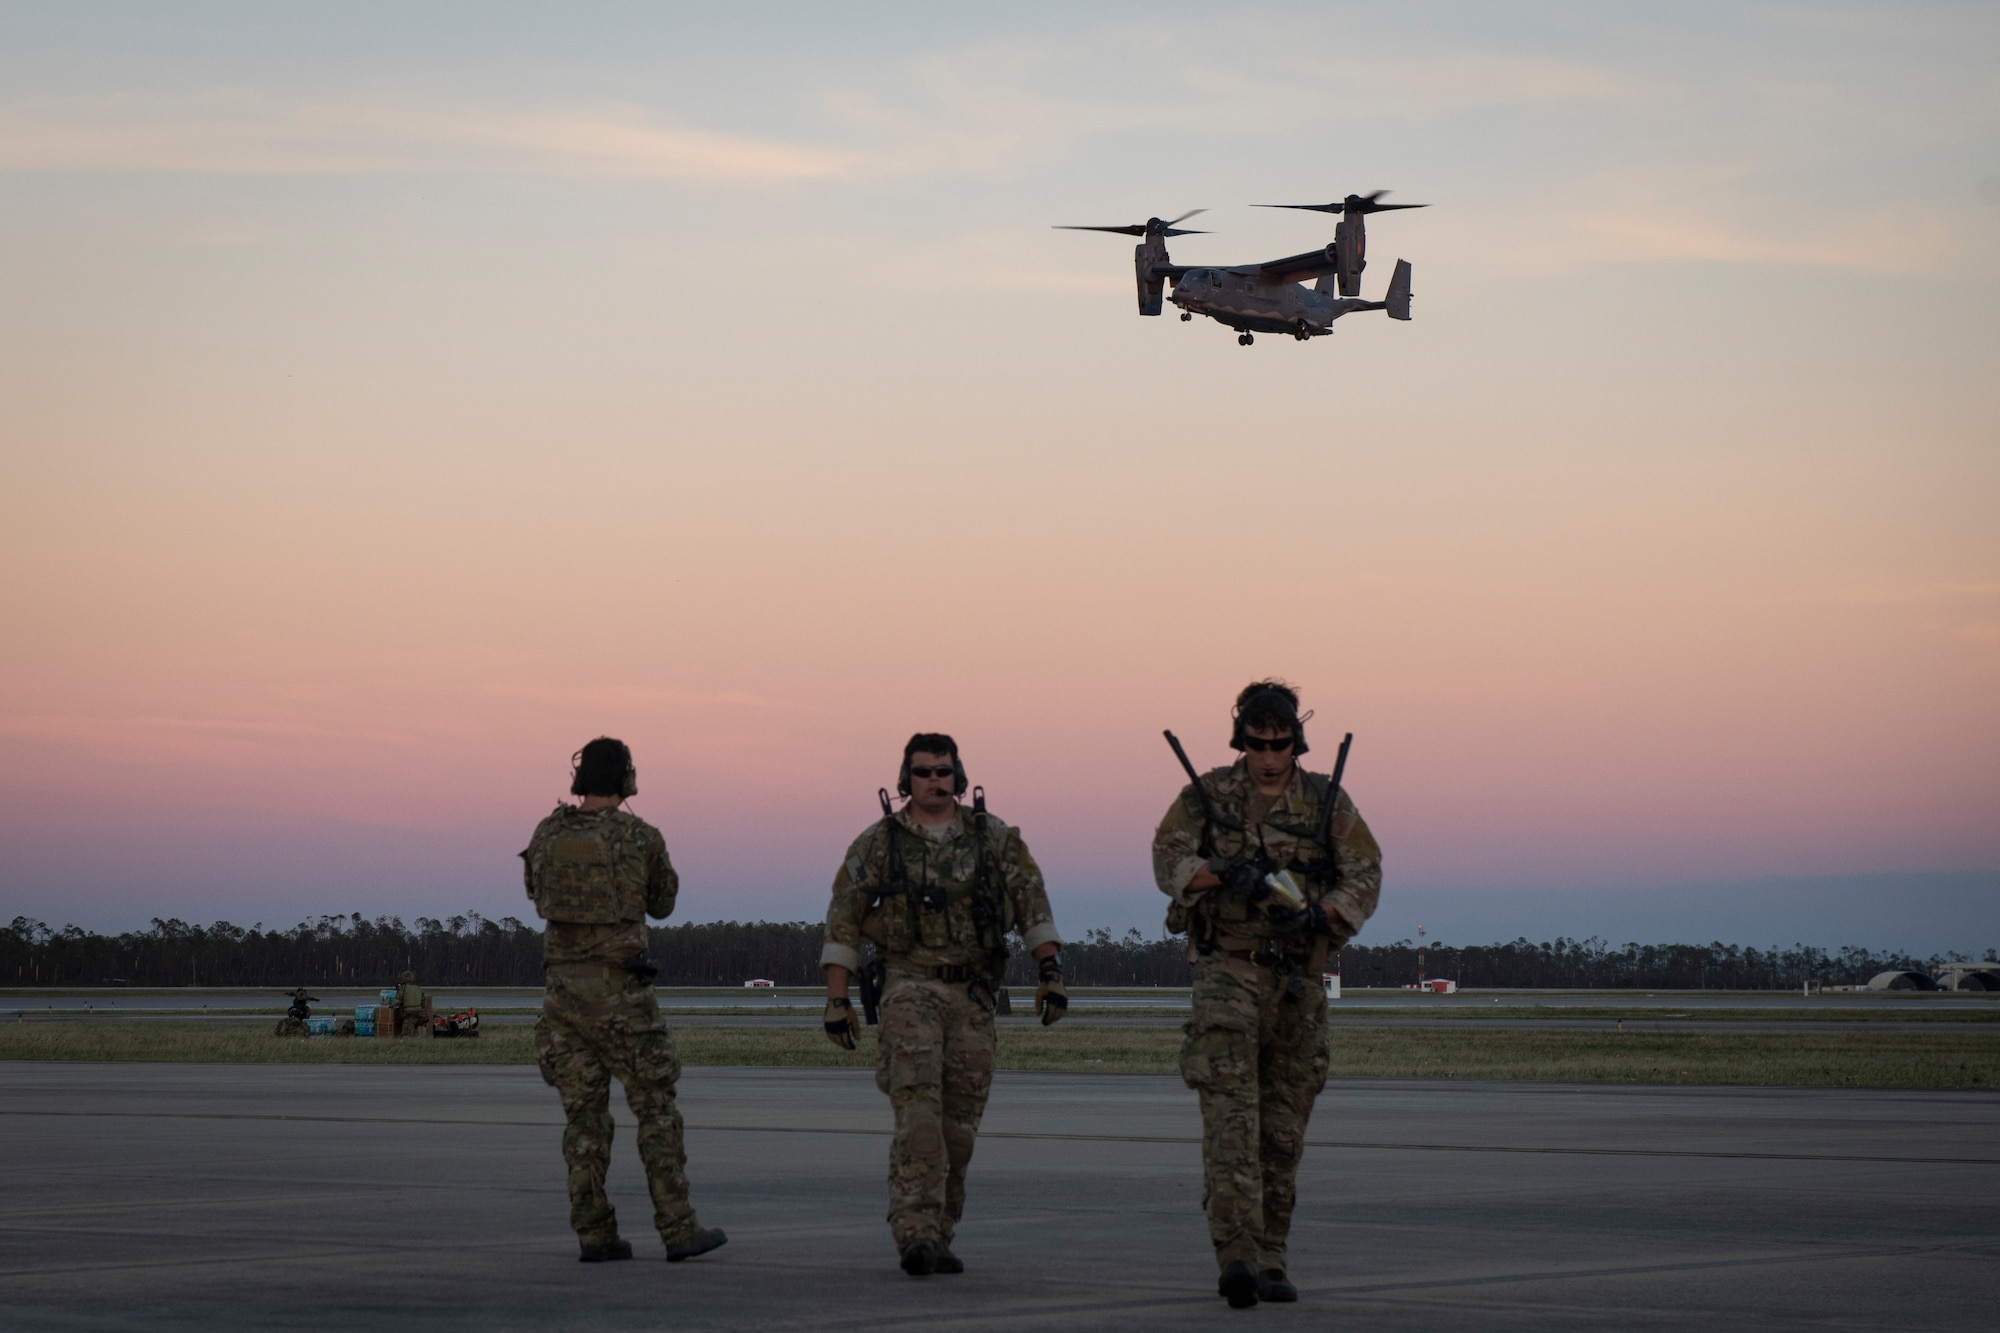 U.S. Air Force Special Tactics Airmen with the 23rd Special Tactics Squadron access Tyndall Air Force Base's airfield, Florida, Oct. 11, 2018.